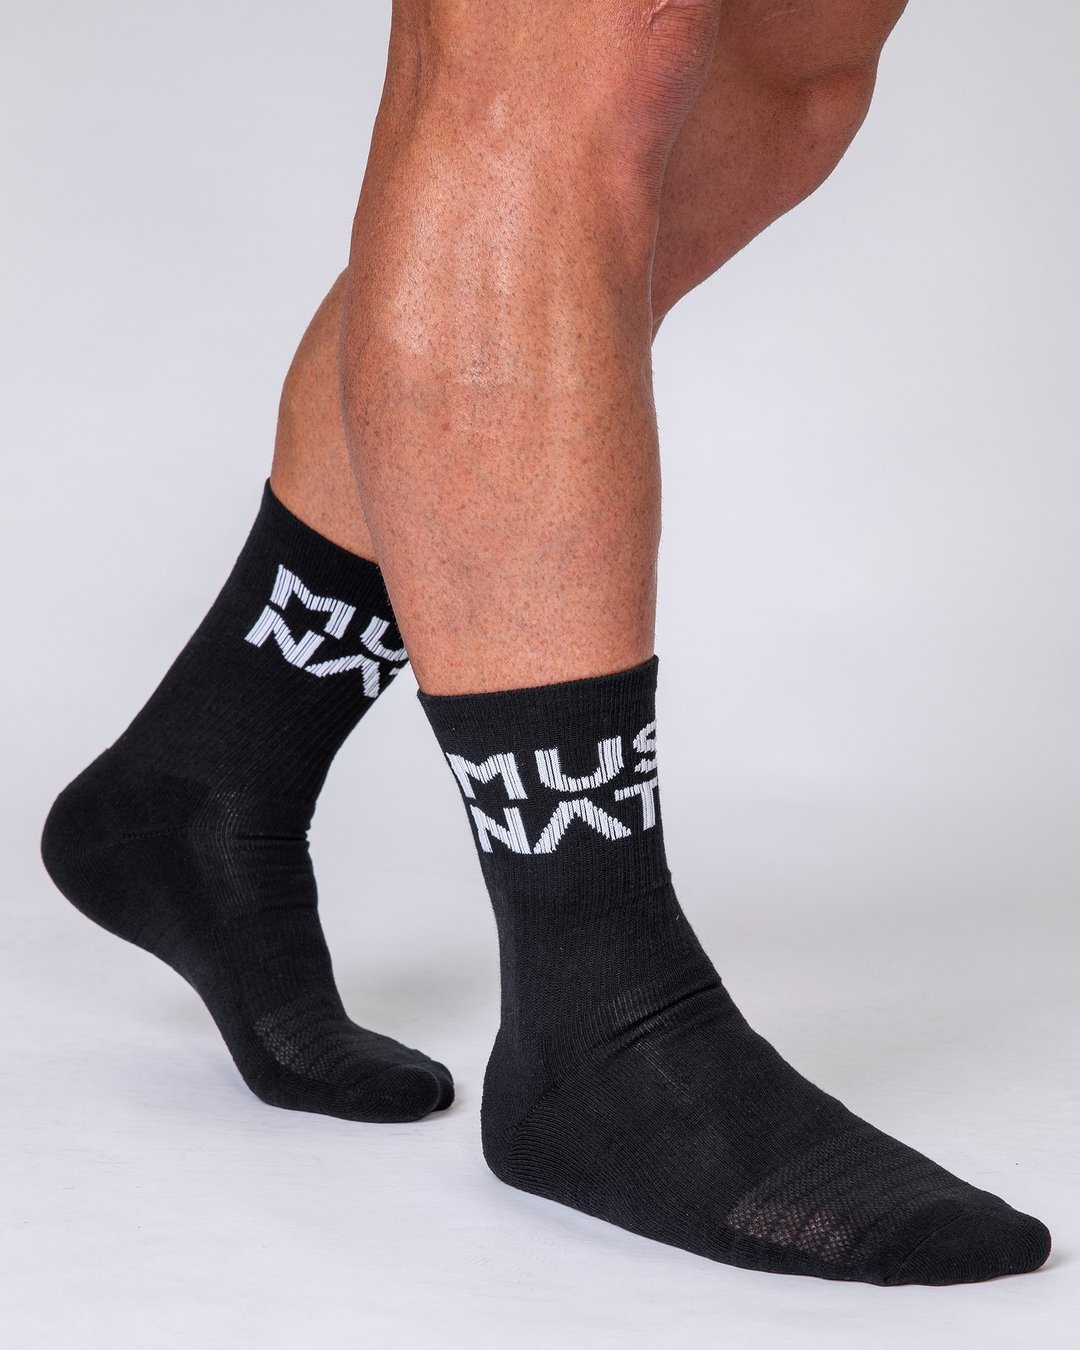 Muscle Nation Unisex Crew Socks - 2 Pack (Black, White)